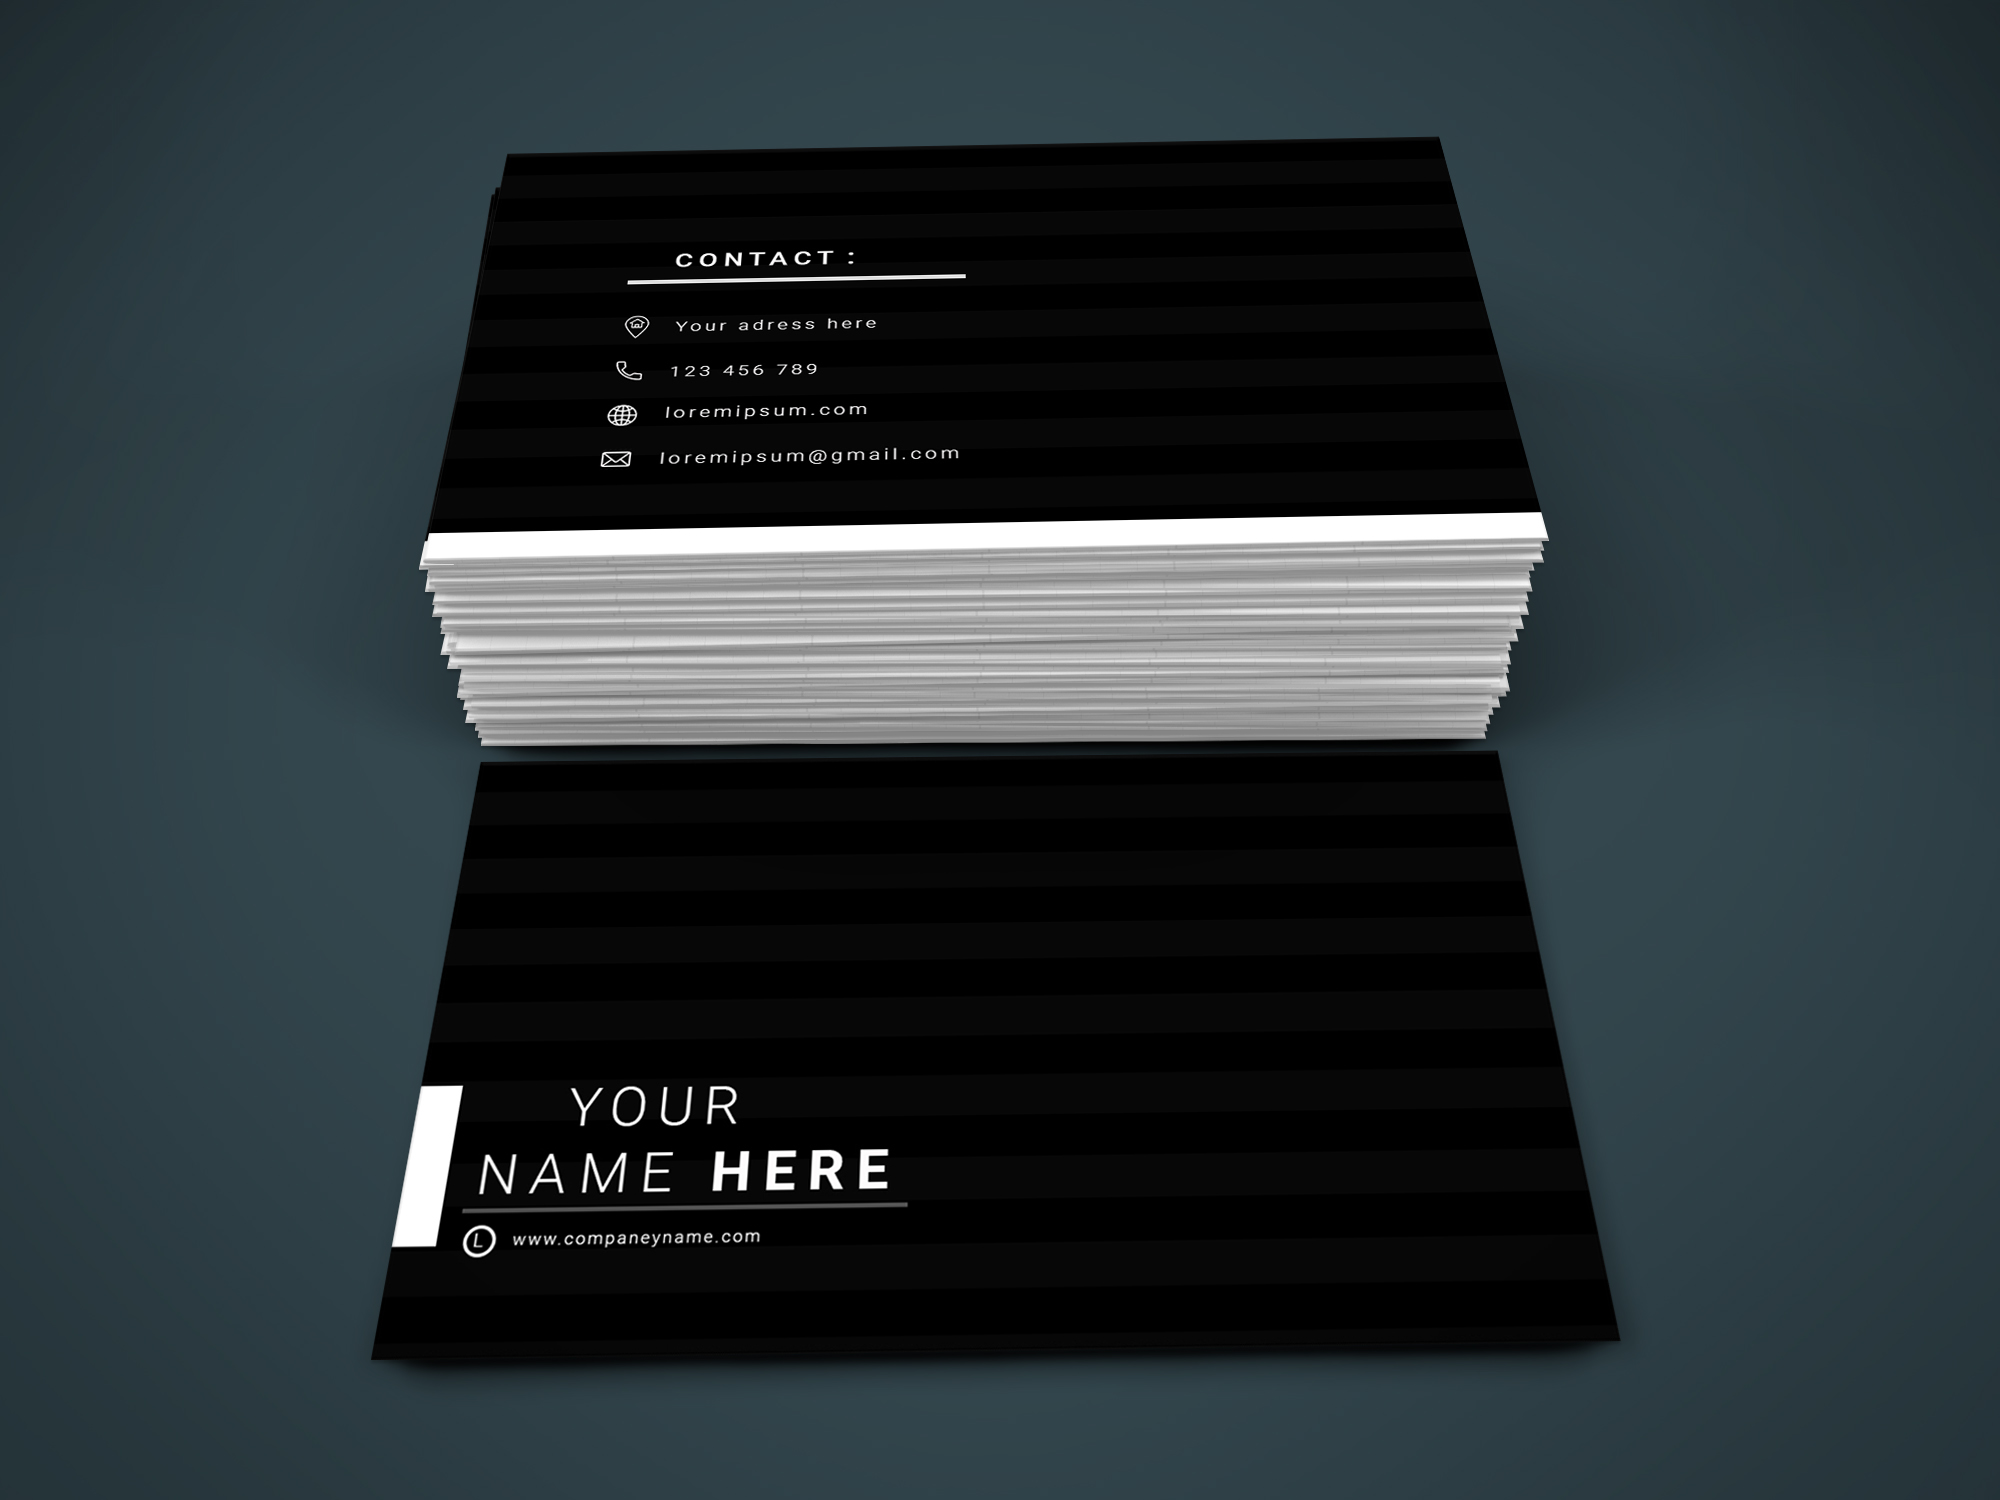 I will design simple modern and professional business card for you